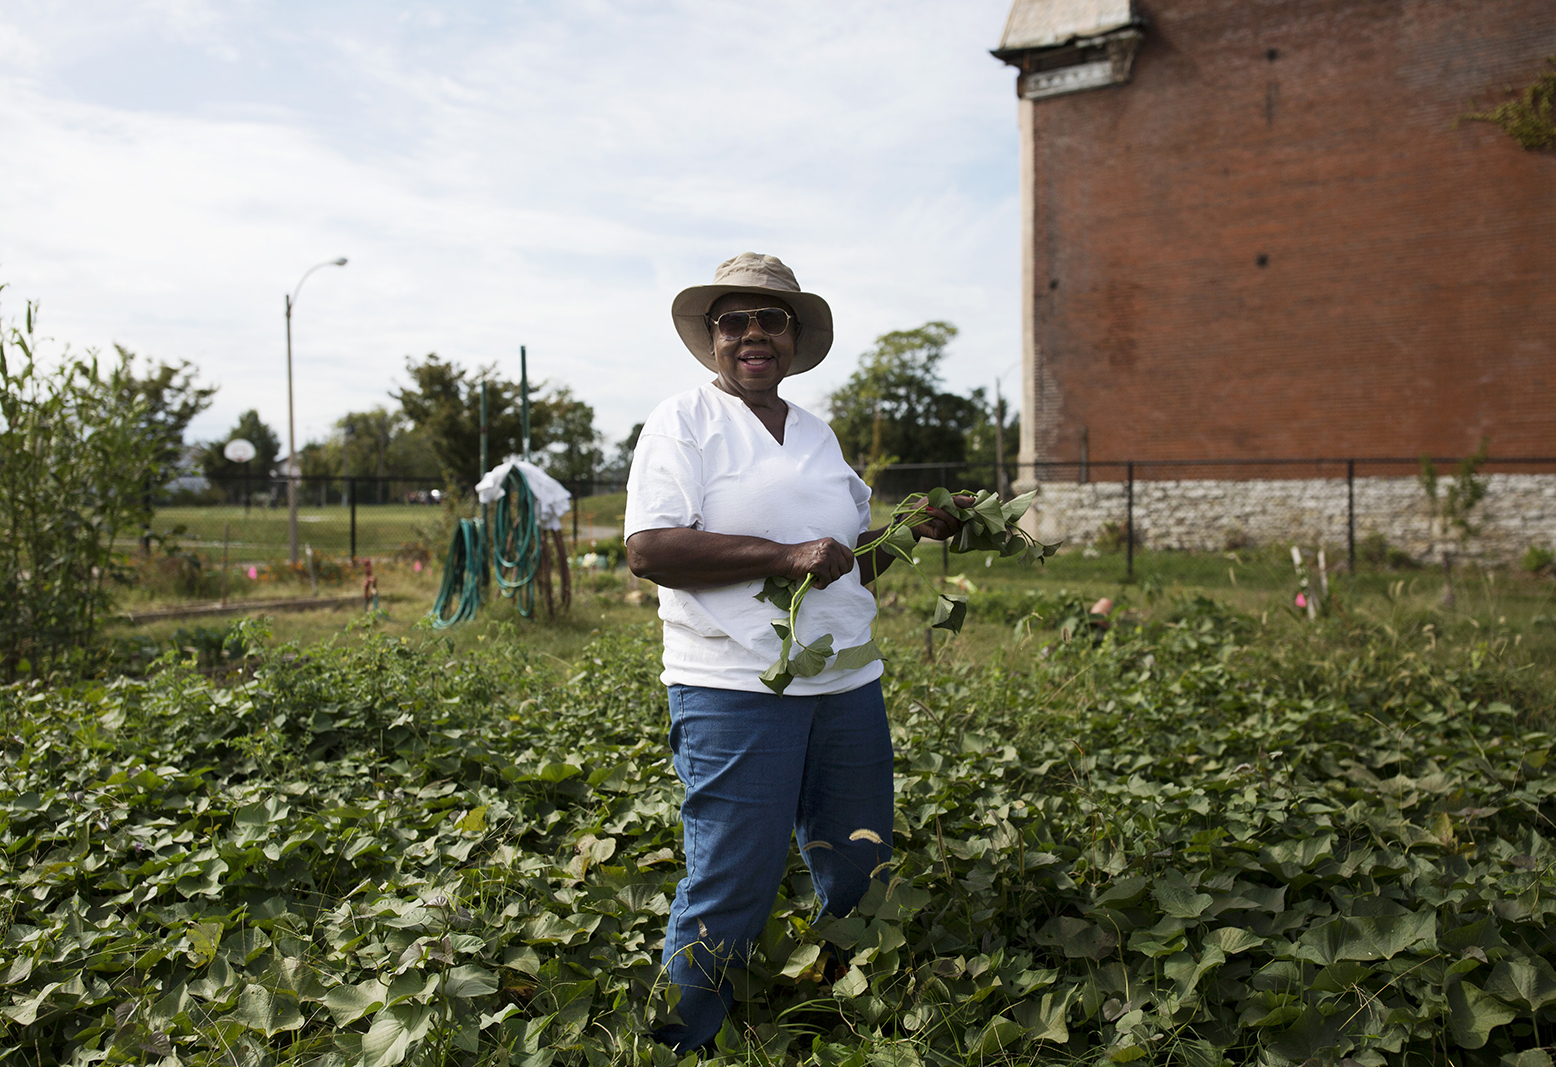 Rosie WIllis harvests sweet potatoes that she give away to volunteers at Fresh Starts Community garden in north St. Louis. Seven years ago, Willis says the now lush garden was full of garbage and drug paraphernalia.   CAROLINA HIDALGO | ST. LOUIS PUBLIC RADIO